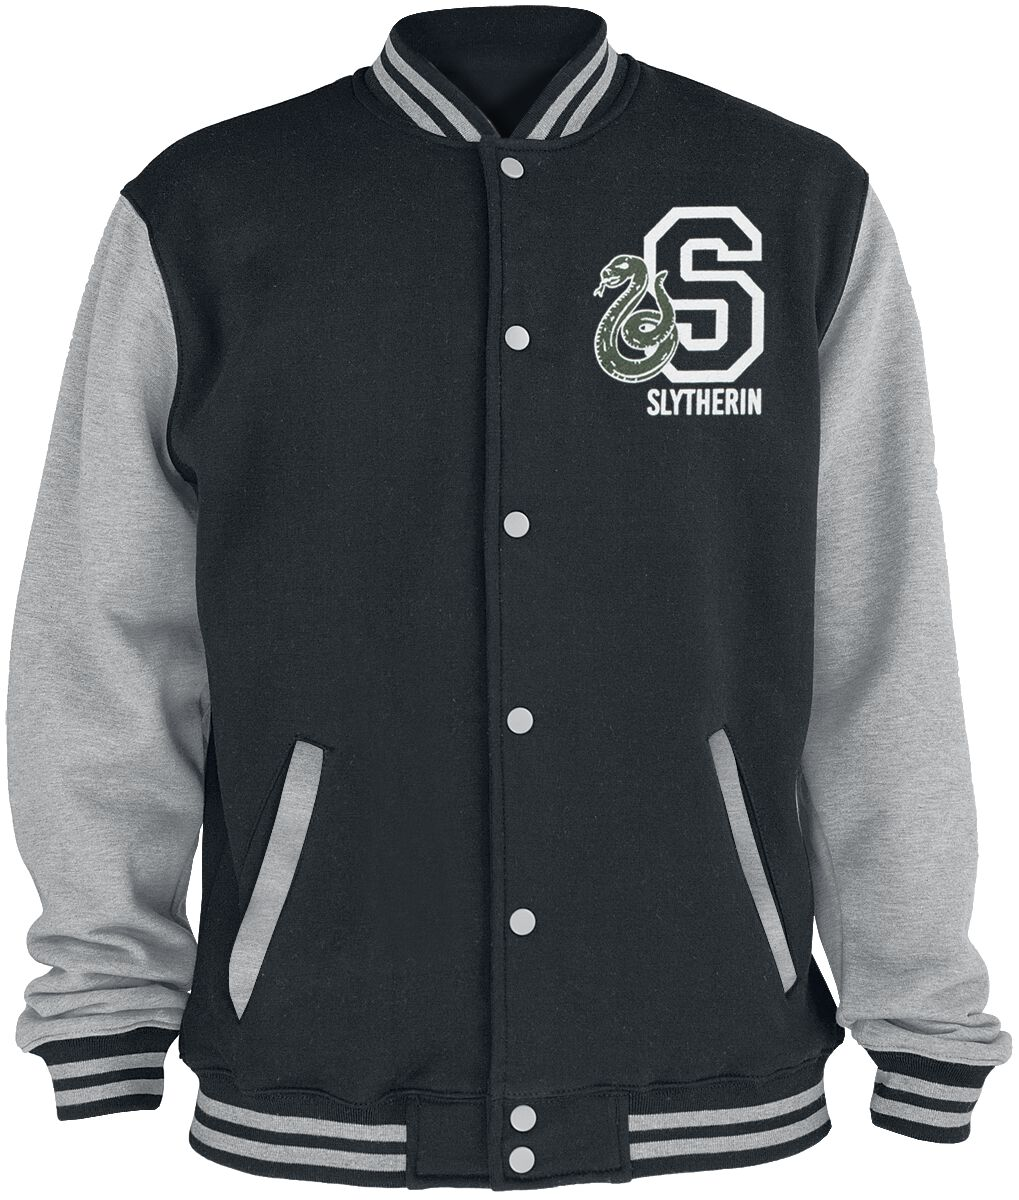 Image of Harry Potter Slytherin College-Jacke schwarz/grau meliert